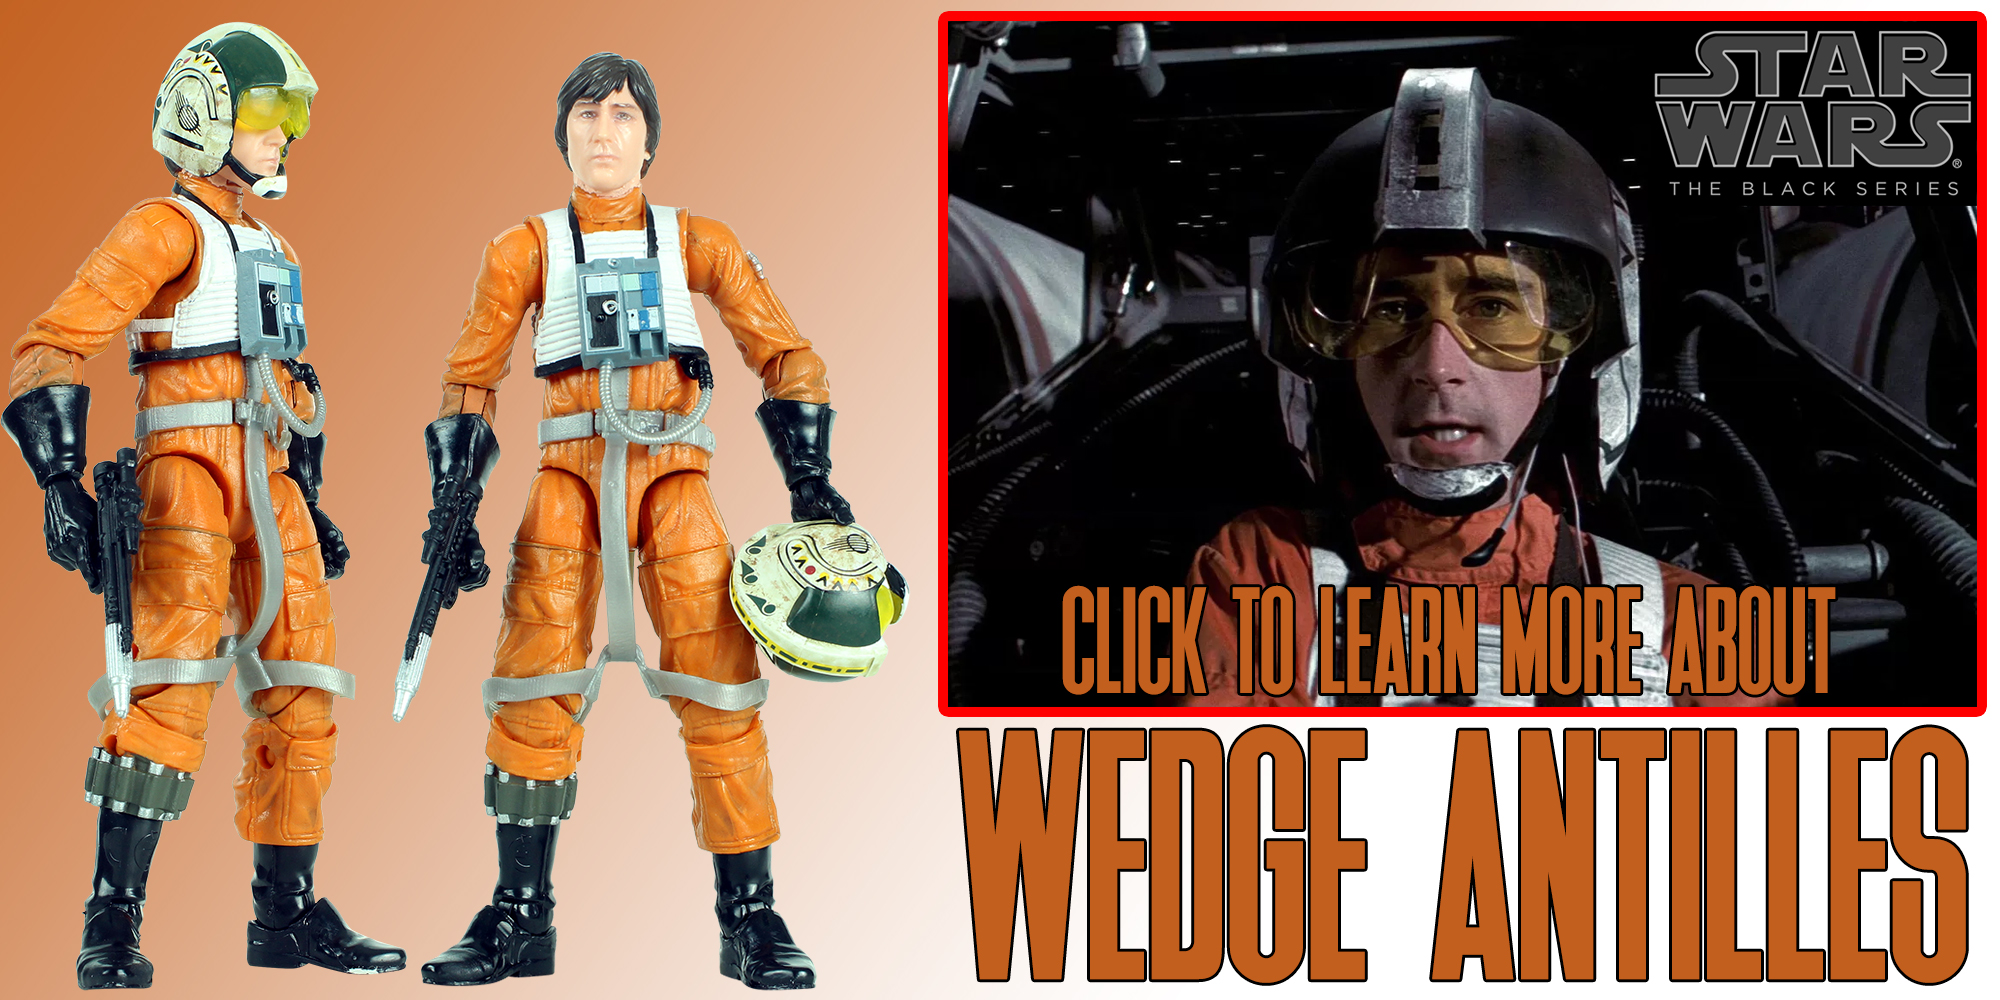 Black Series Wedge Antilles